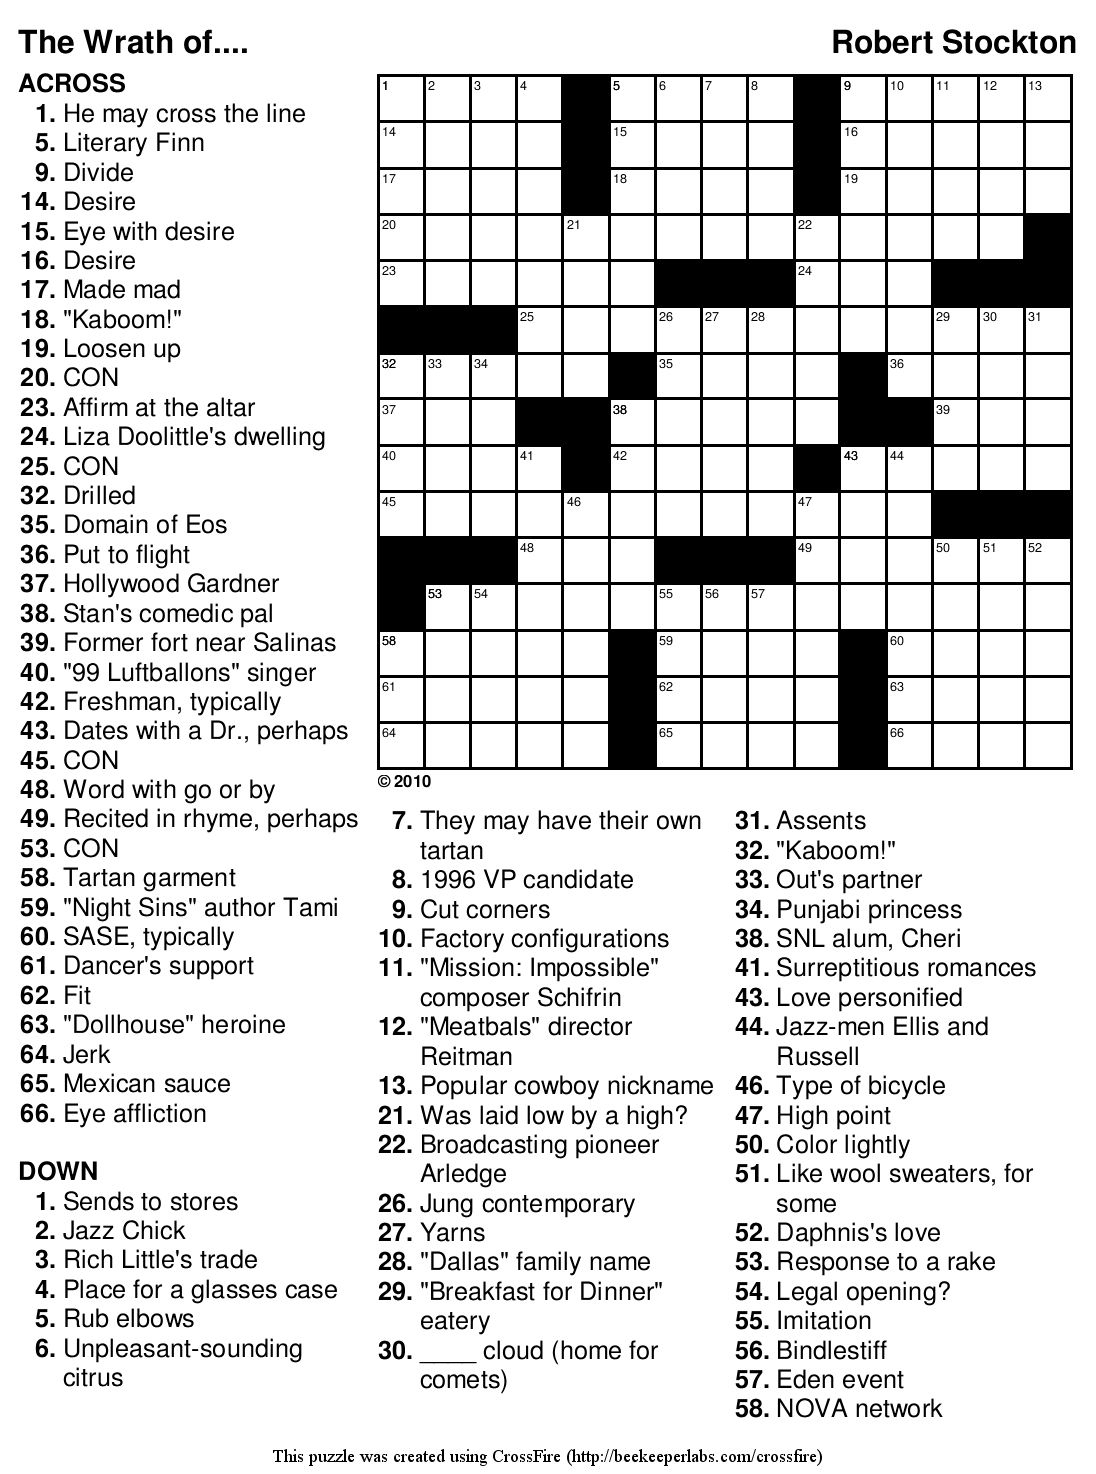 Marvelous Crossword Puzzles Easy Printable Free Org | Chas's Board - Printable Crossword Puzzles By Topic